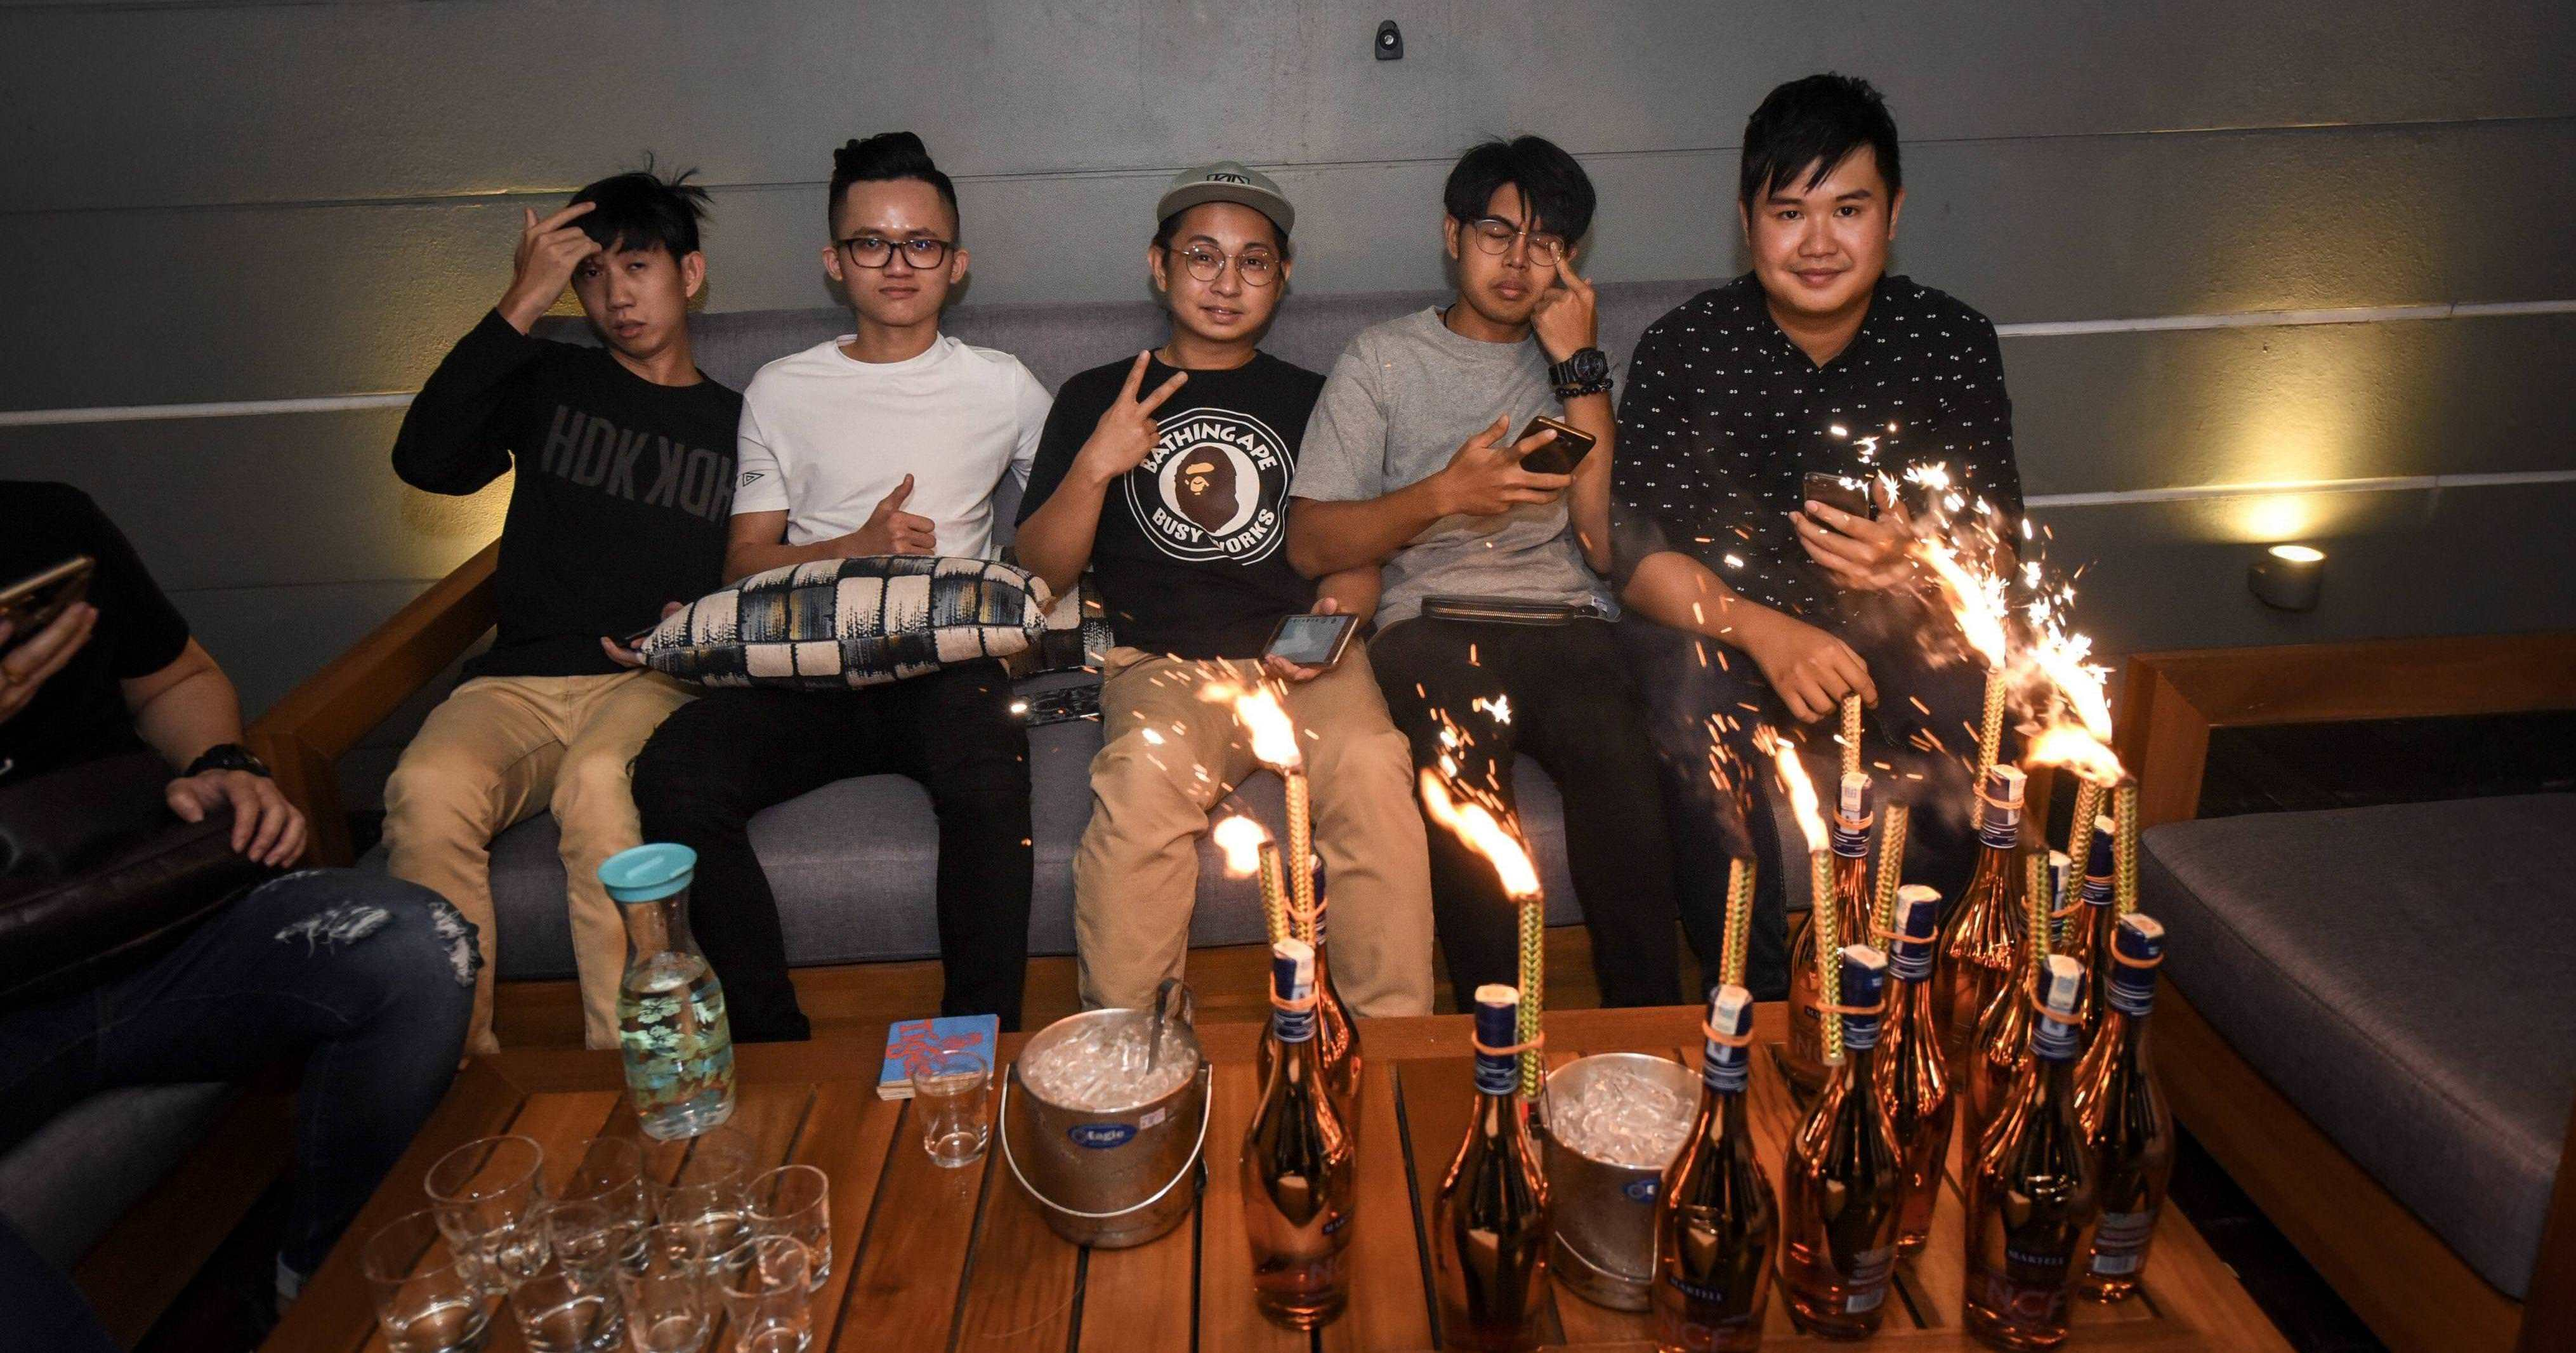 We All Have These 9 Types Of Friends In Our Drinking Gang